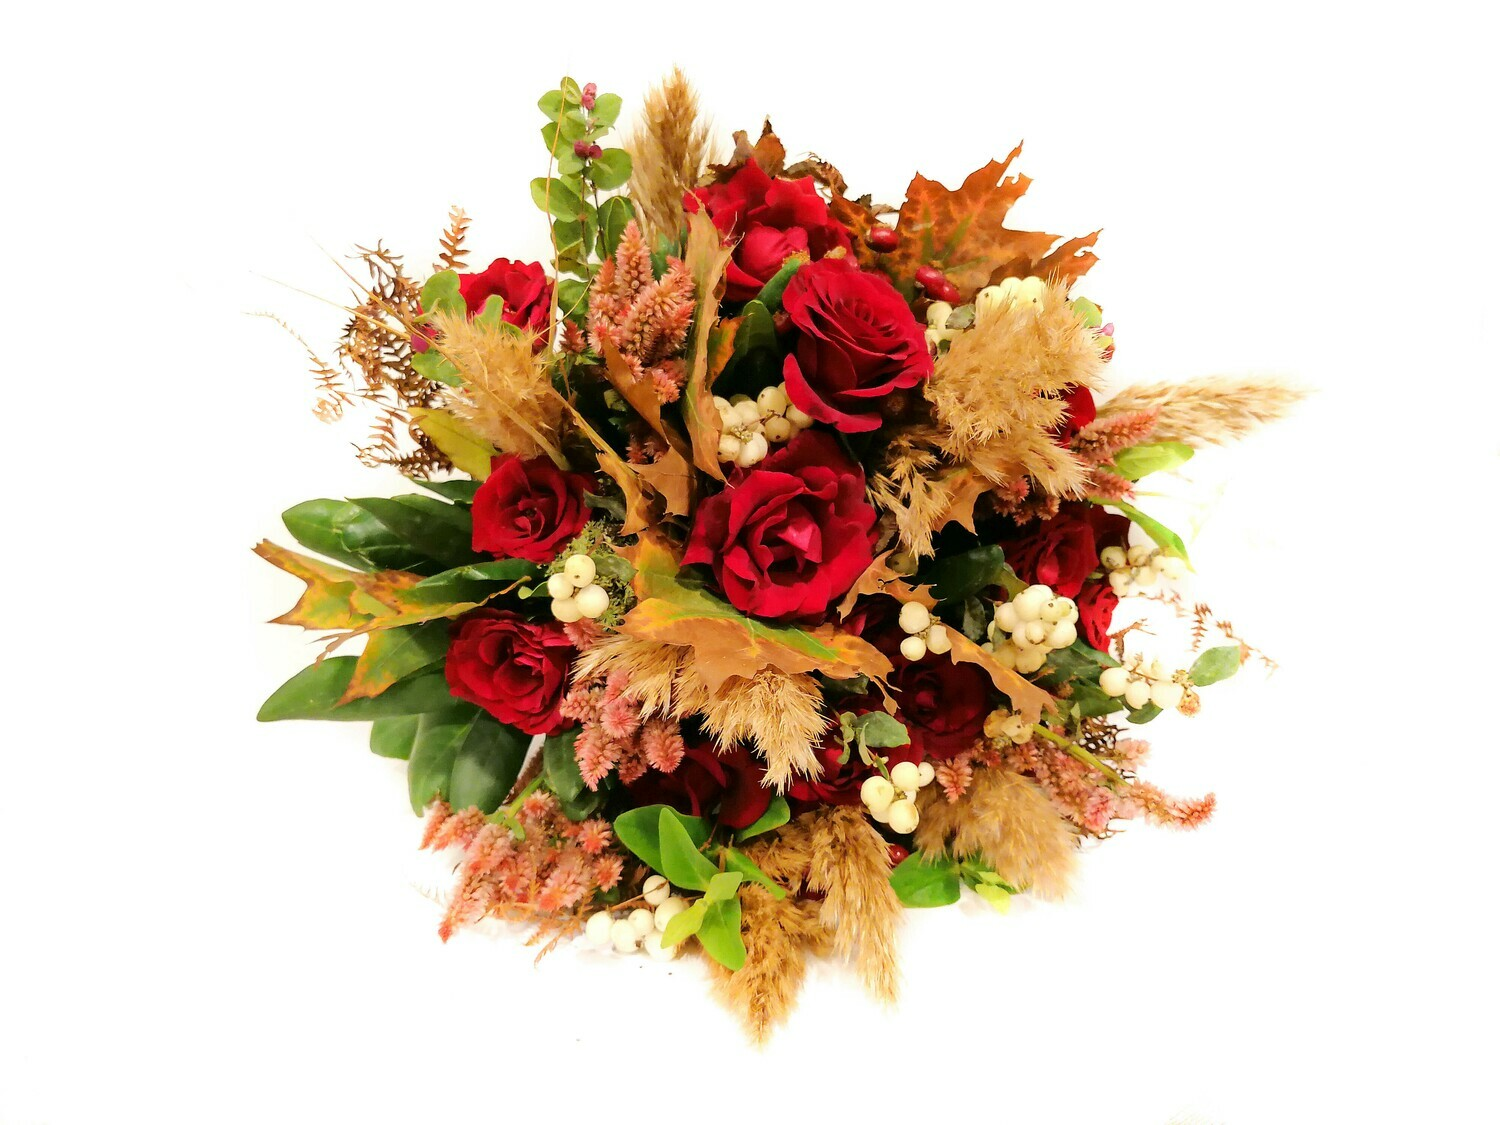 Stylish Red (Bouquet) - Flowers by NatureBMB